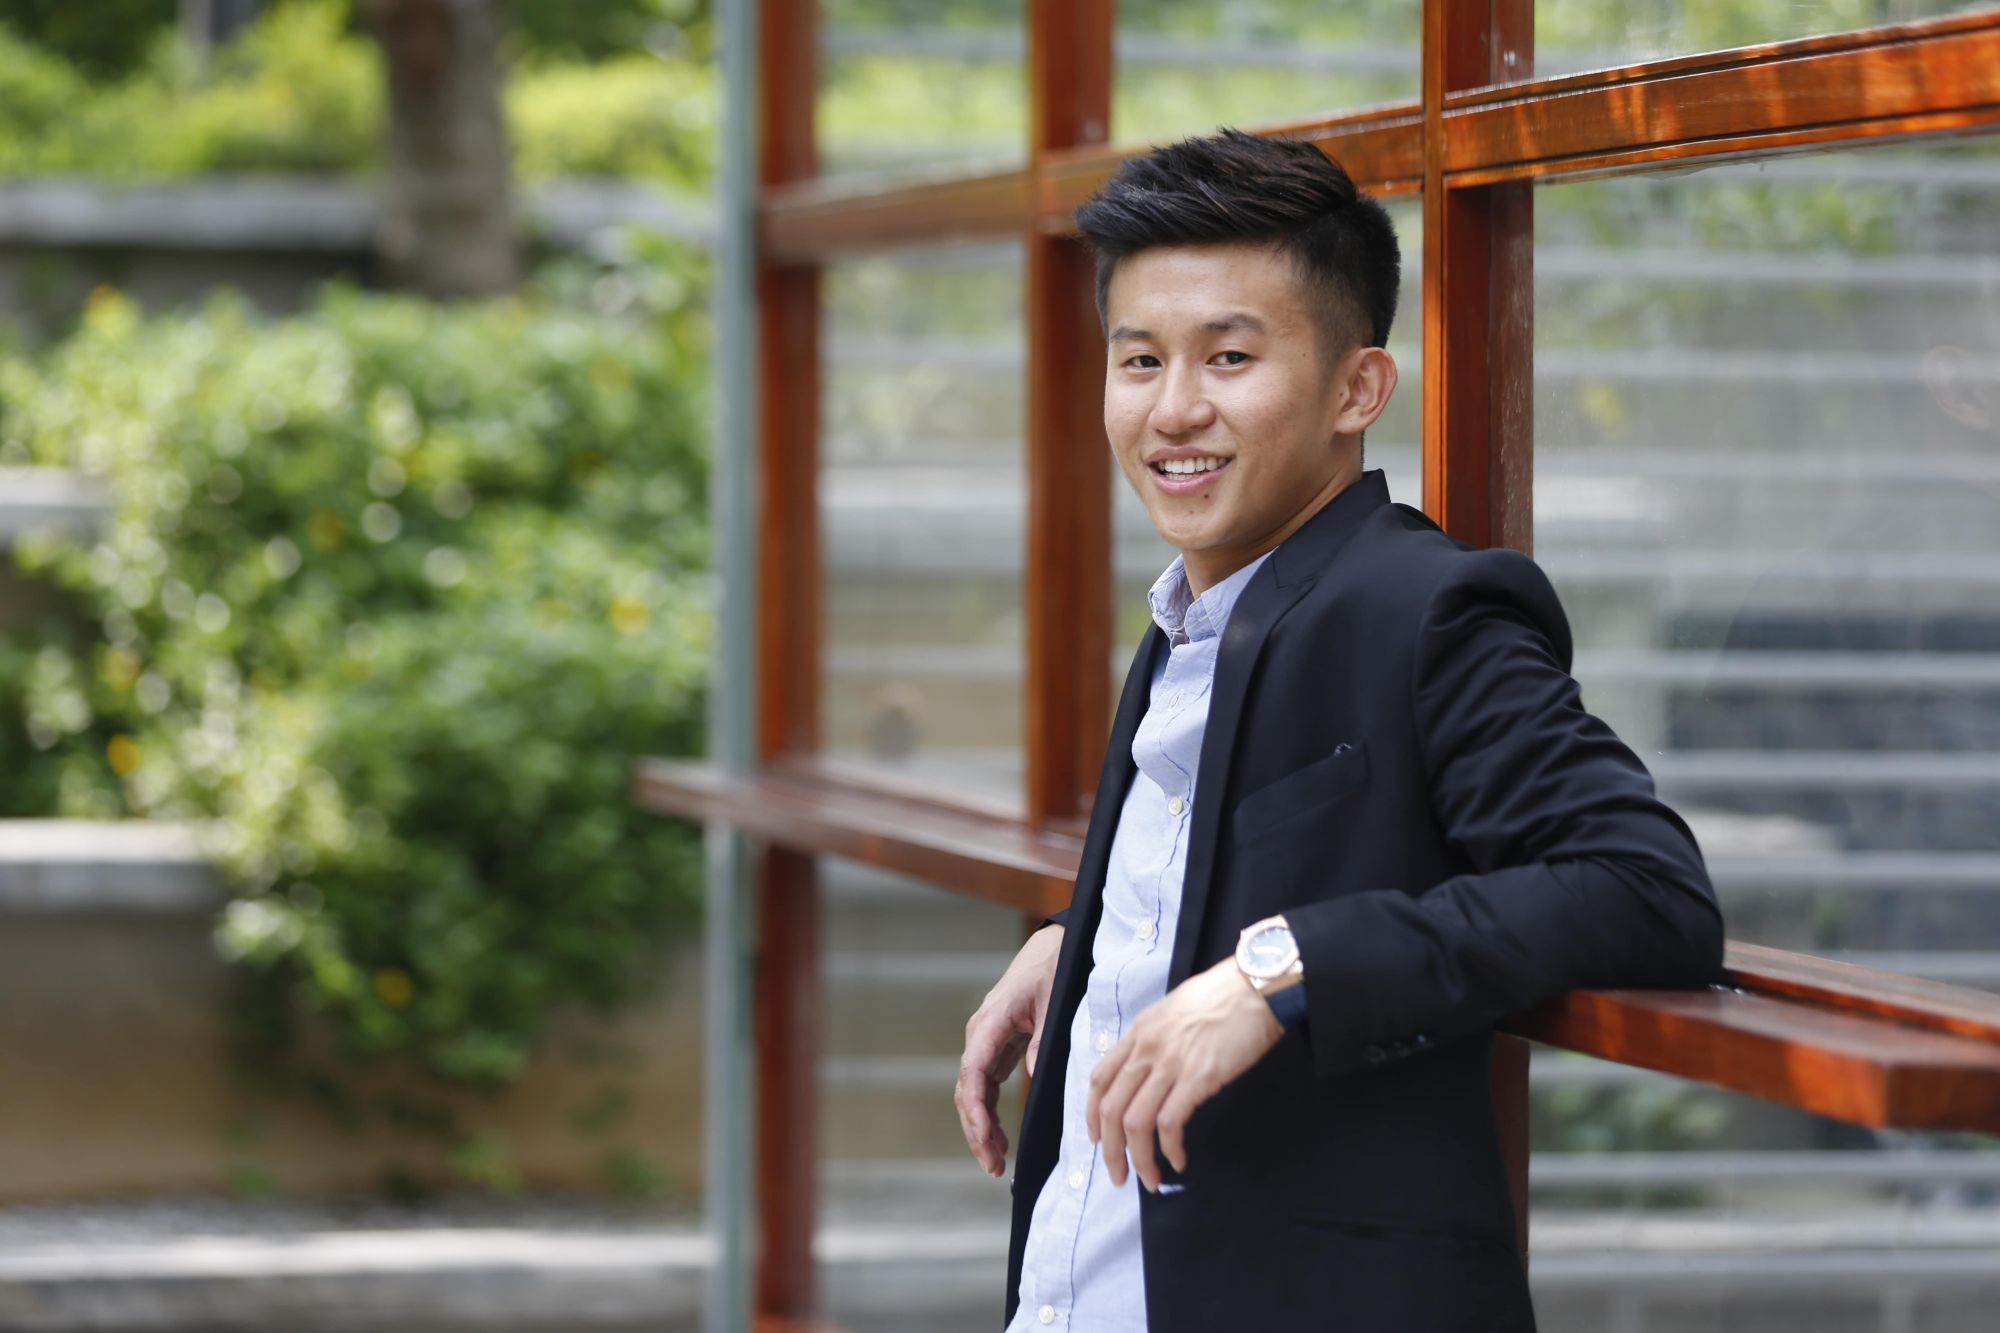 Executive Director Of Magic Ehon Chan On Why He Chose To Stay In Malaysia